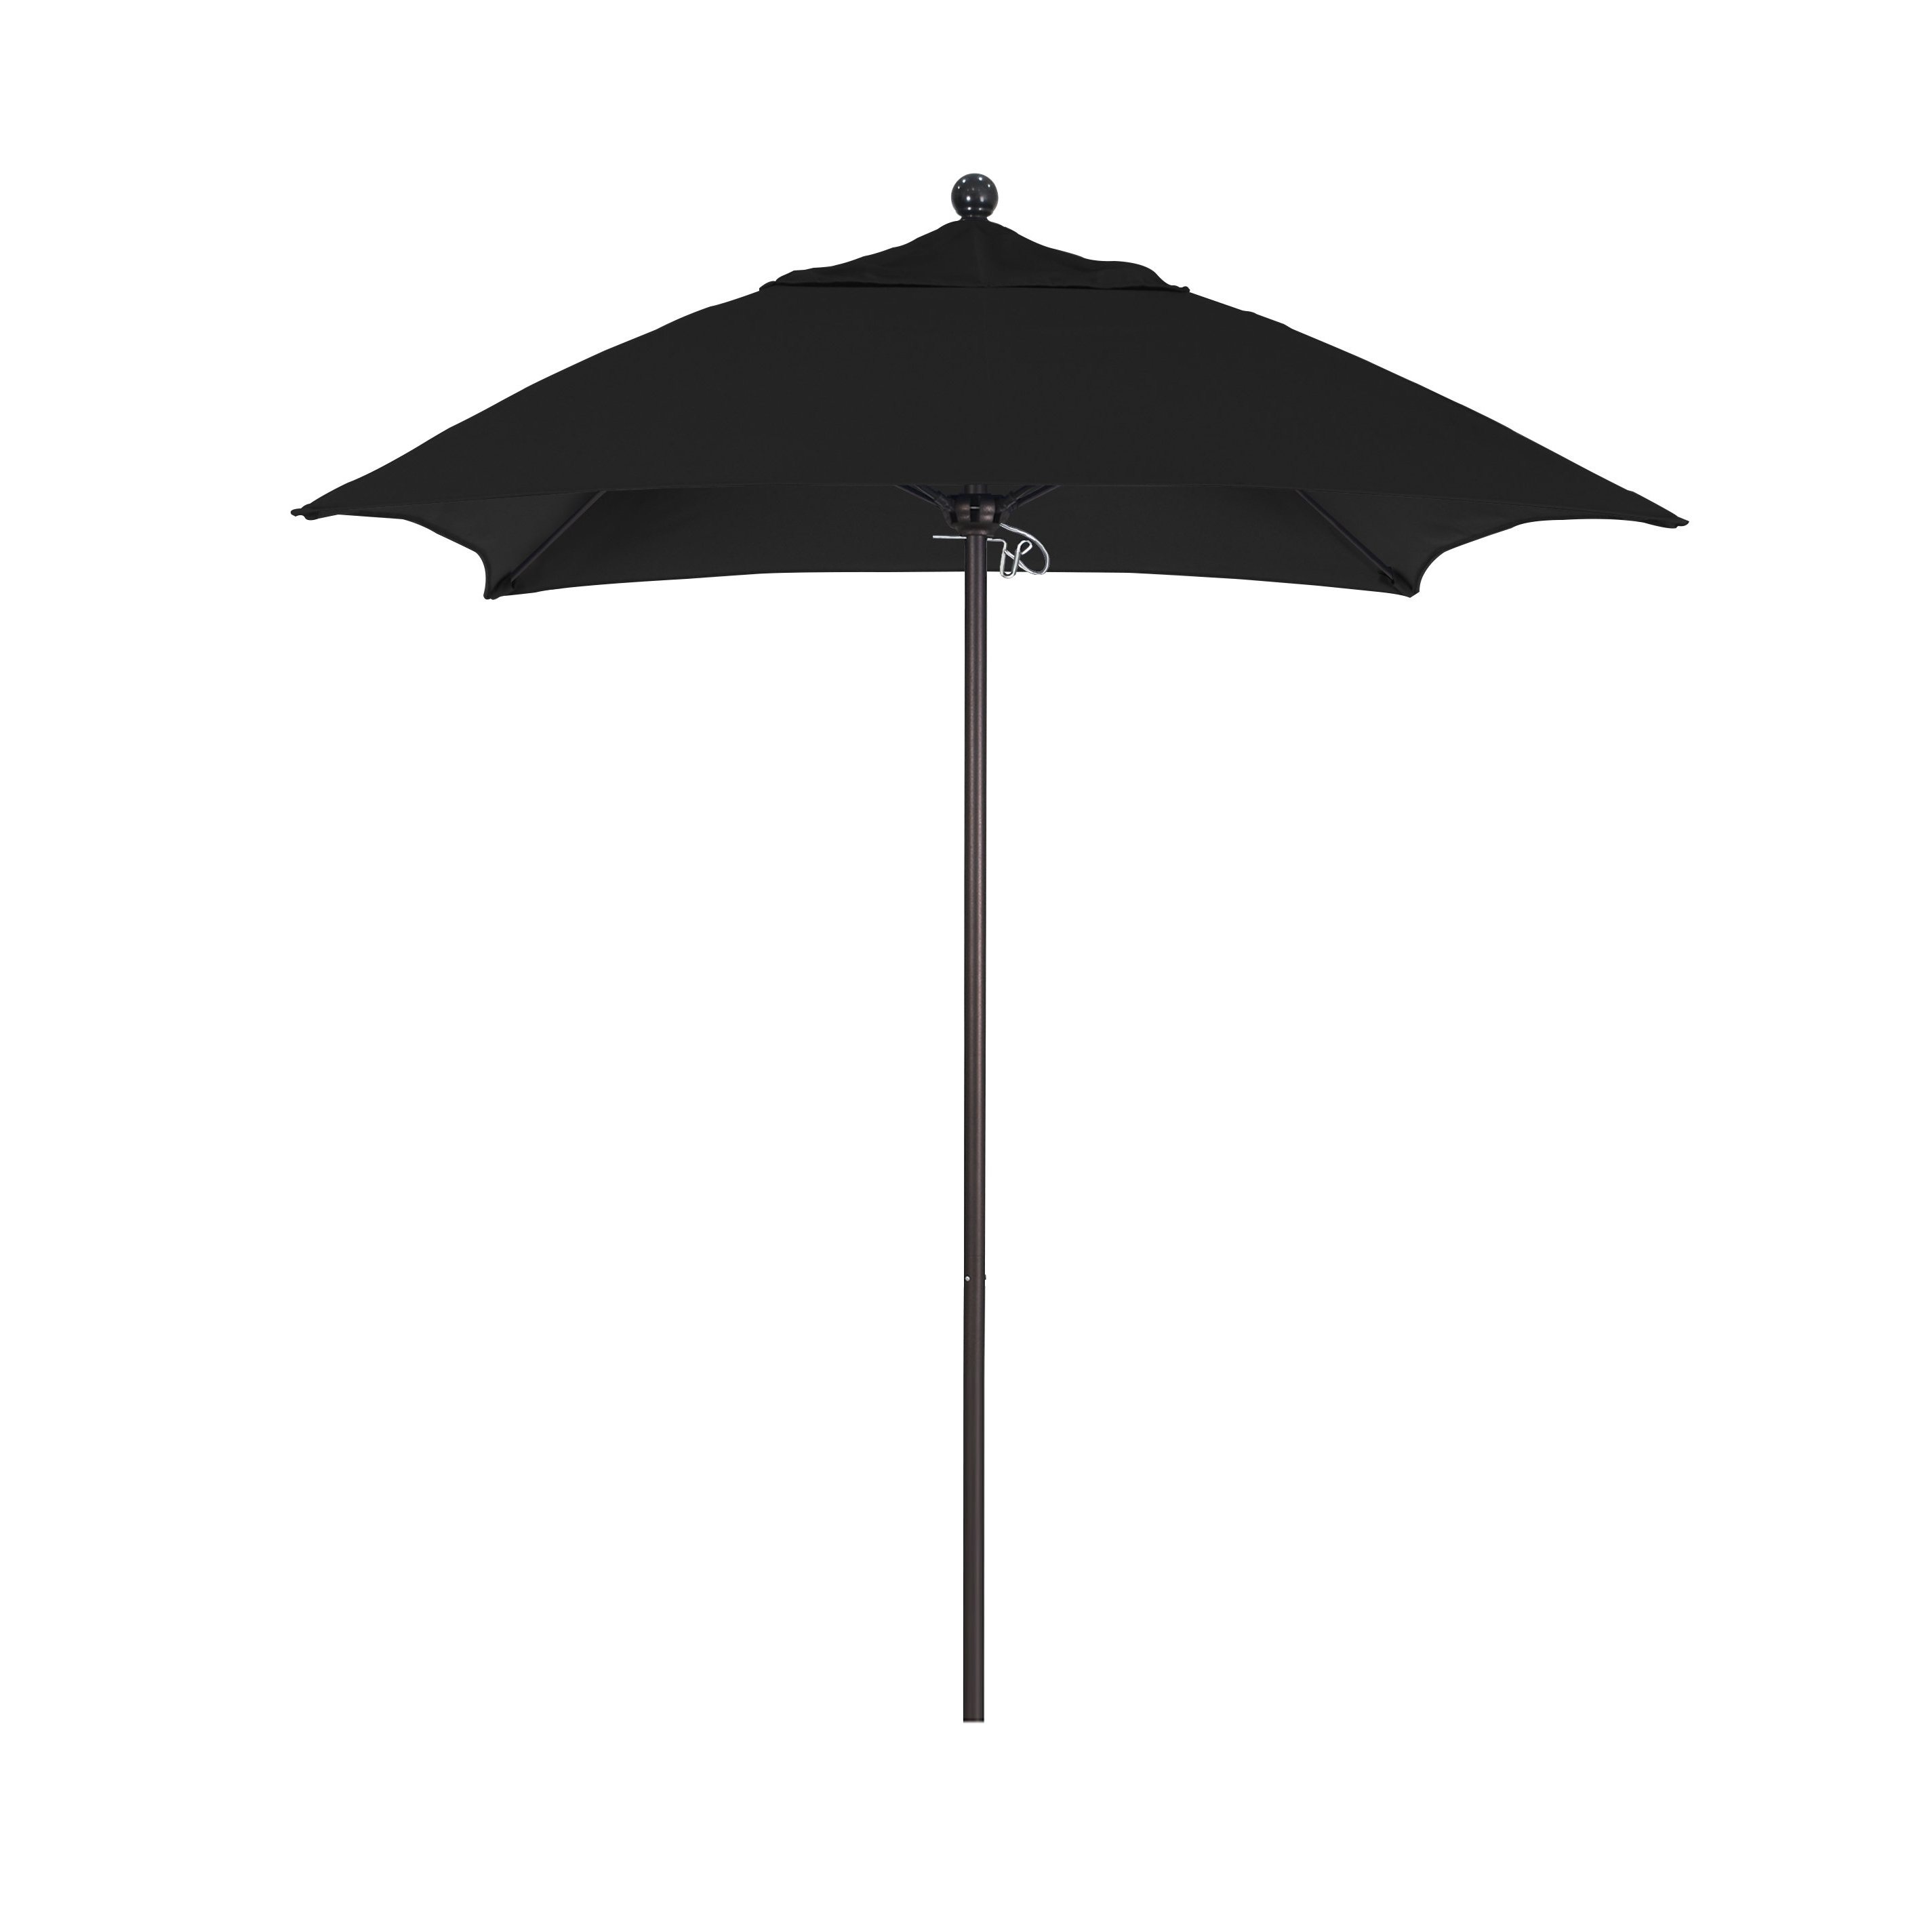 Famous Caravelle Square Market Sunbrella Umbrellas Pertaining To Benson 6' Square Market Sunbrella Umbrella (View 12 of 20)